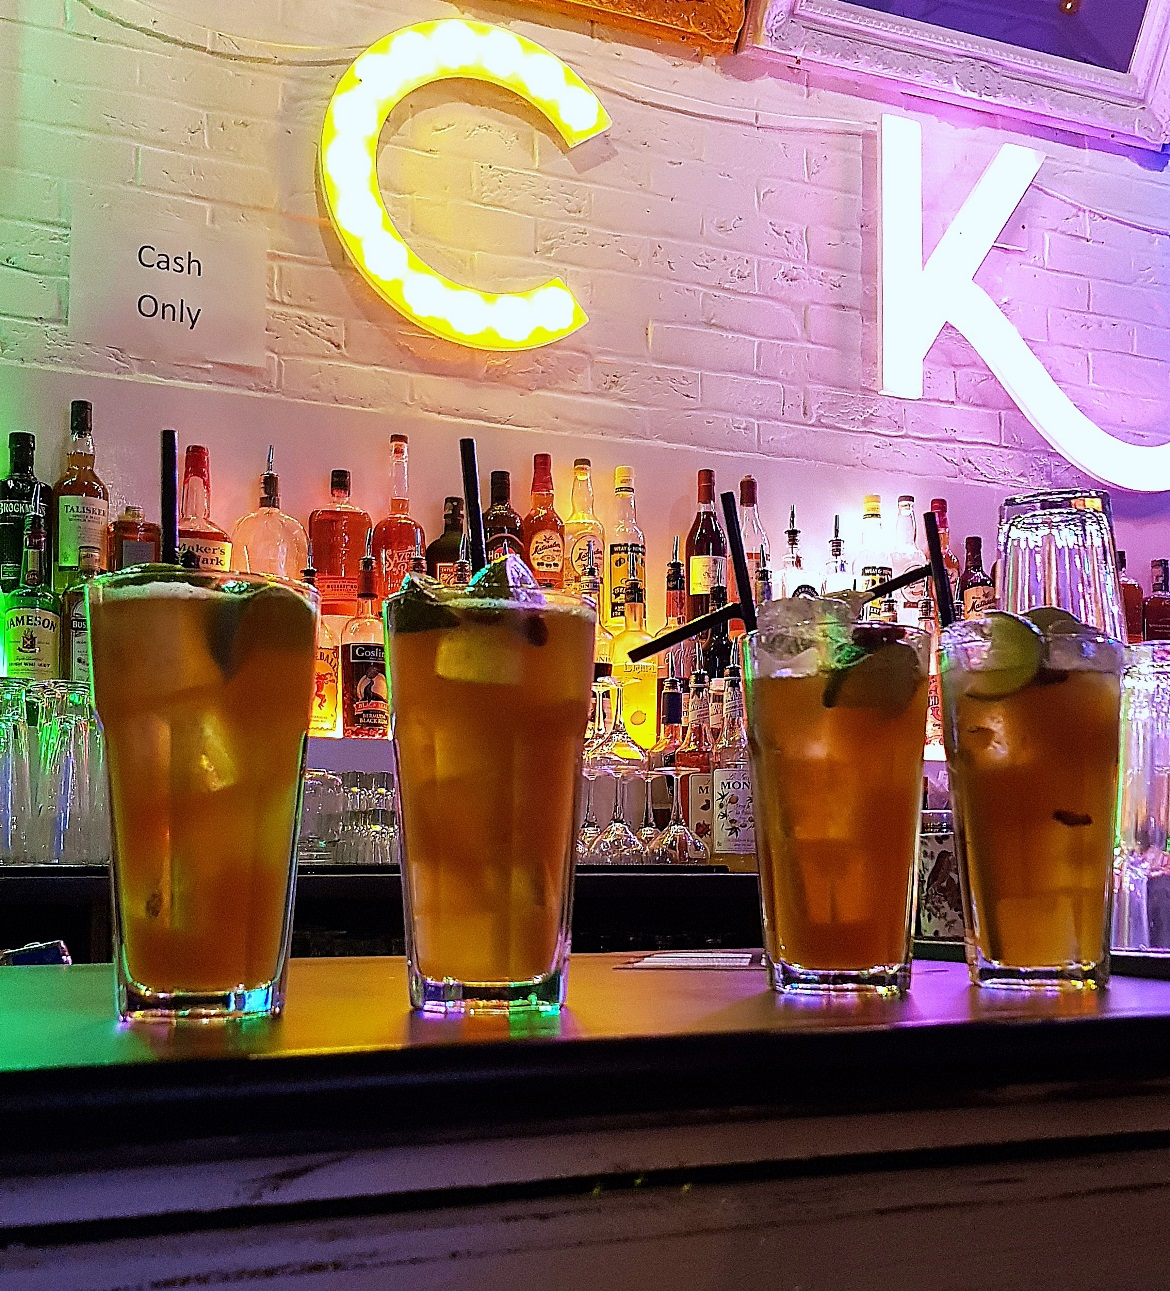 Rum & Raisin Cocktails at Cuckoo Leeds - November Monthly Recap by BeckyBecky Blogs